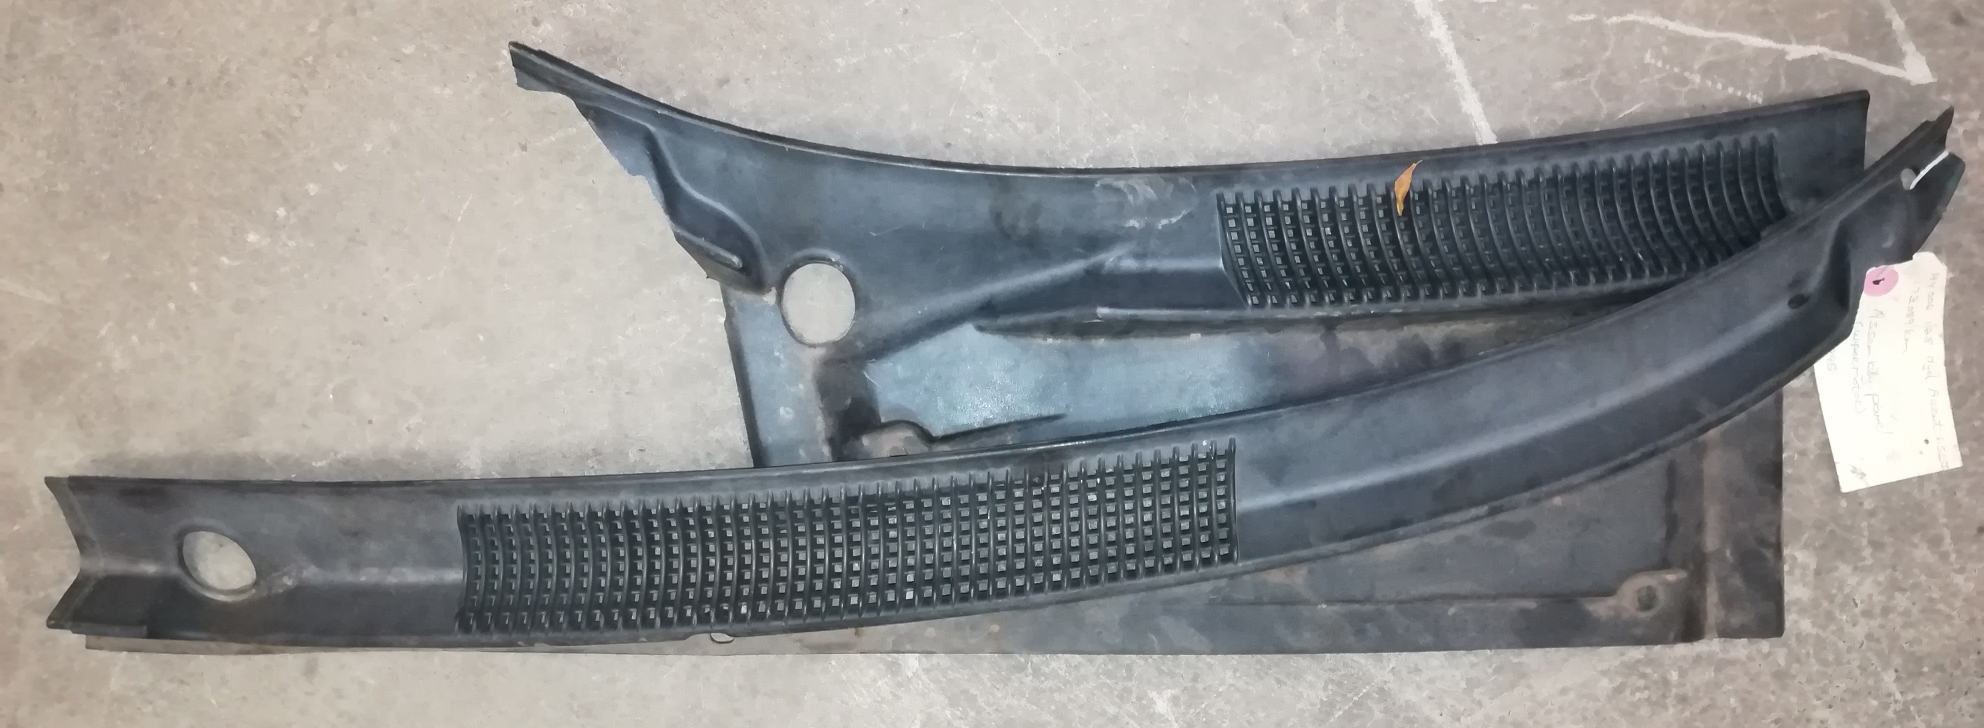 Hyundai Accent 1996 Wiper Cowlings for SALE!!